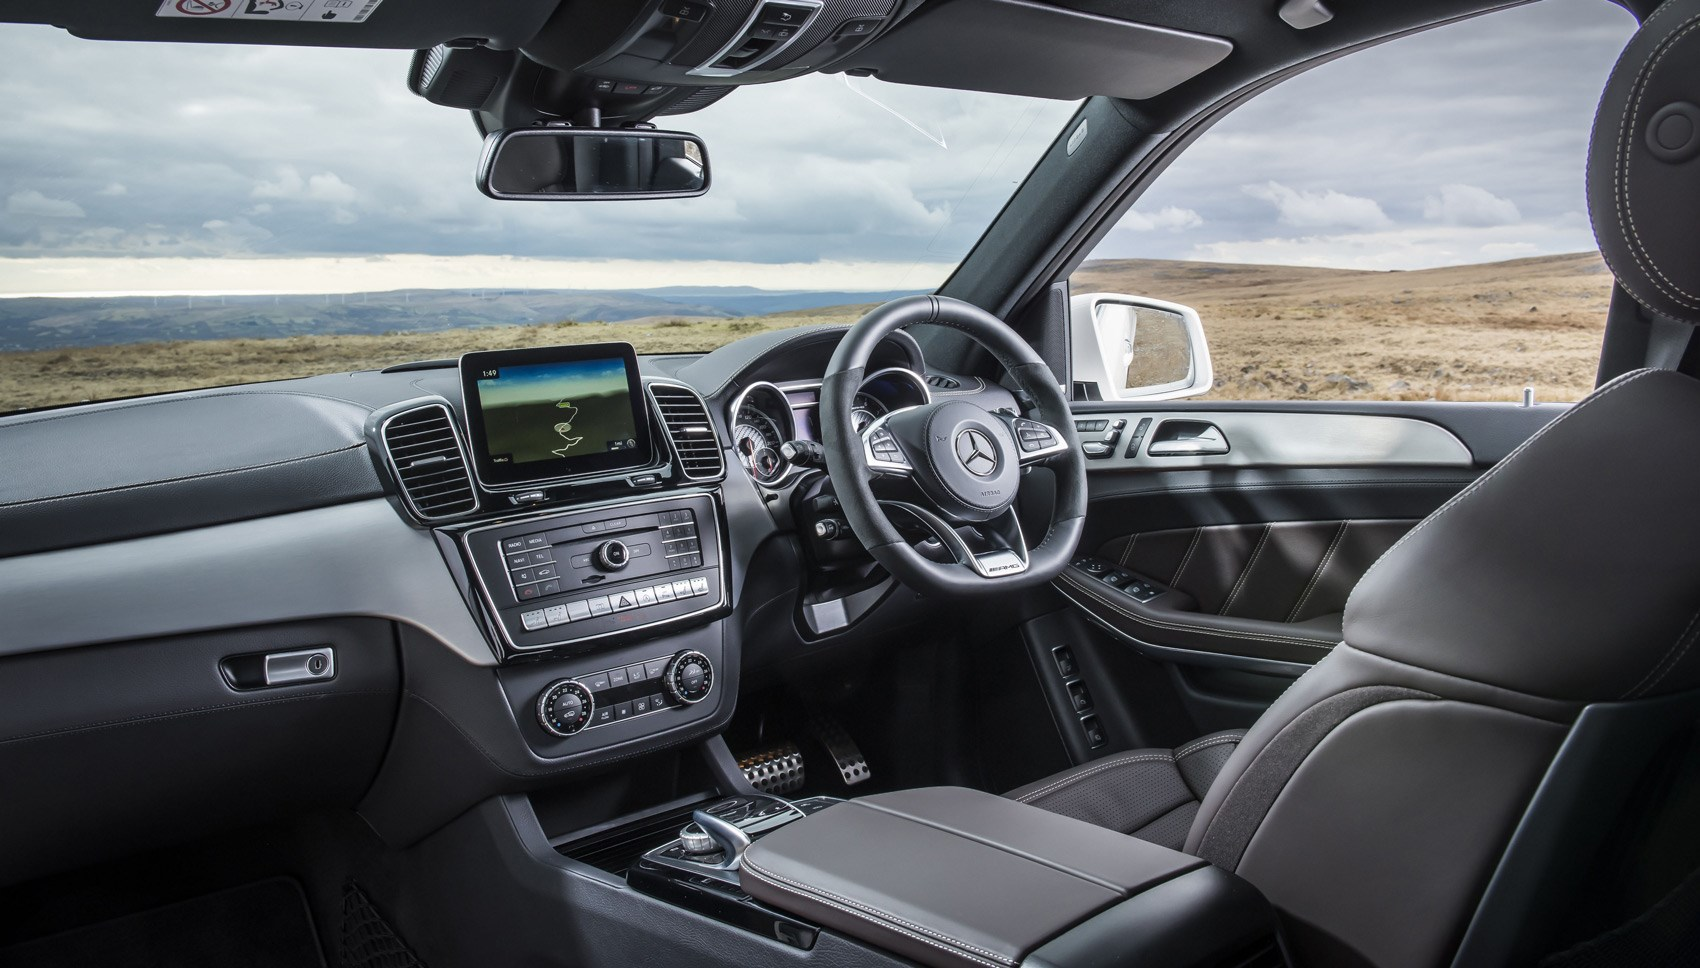 Mercedes-AMG GLS63 interior